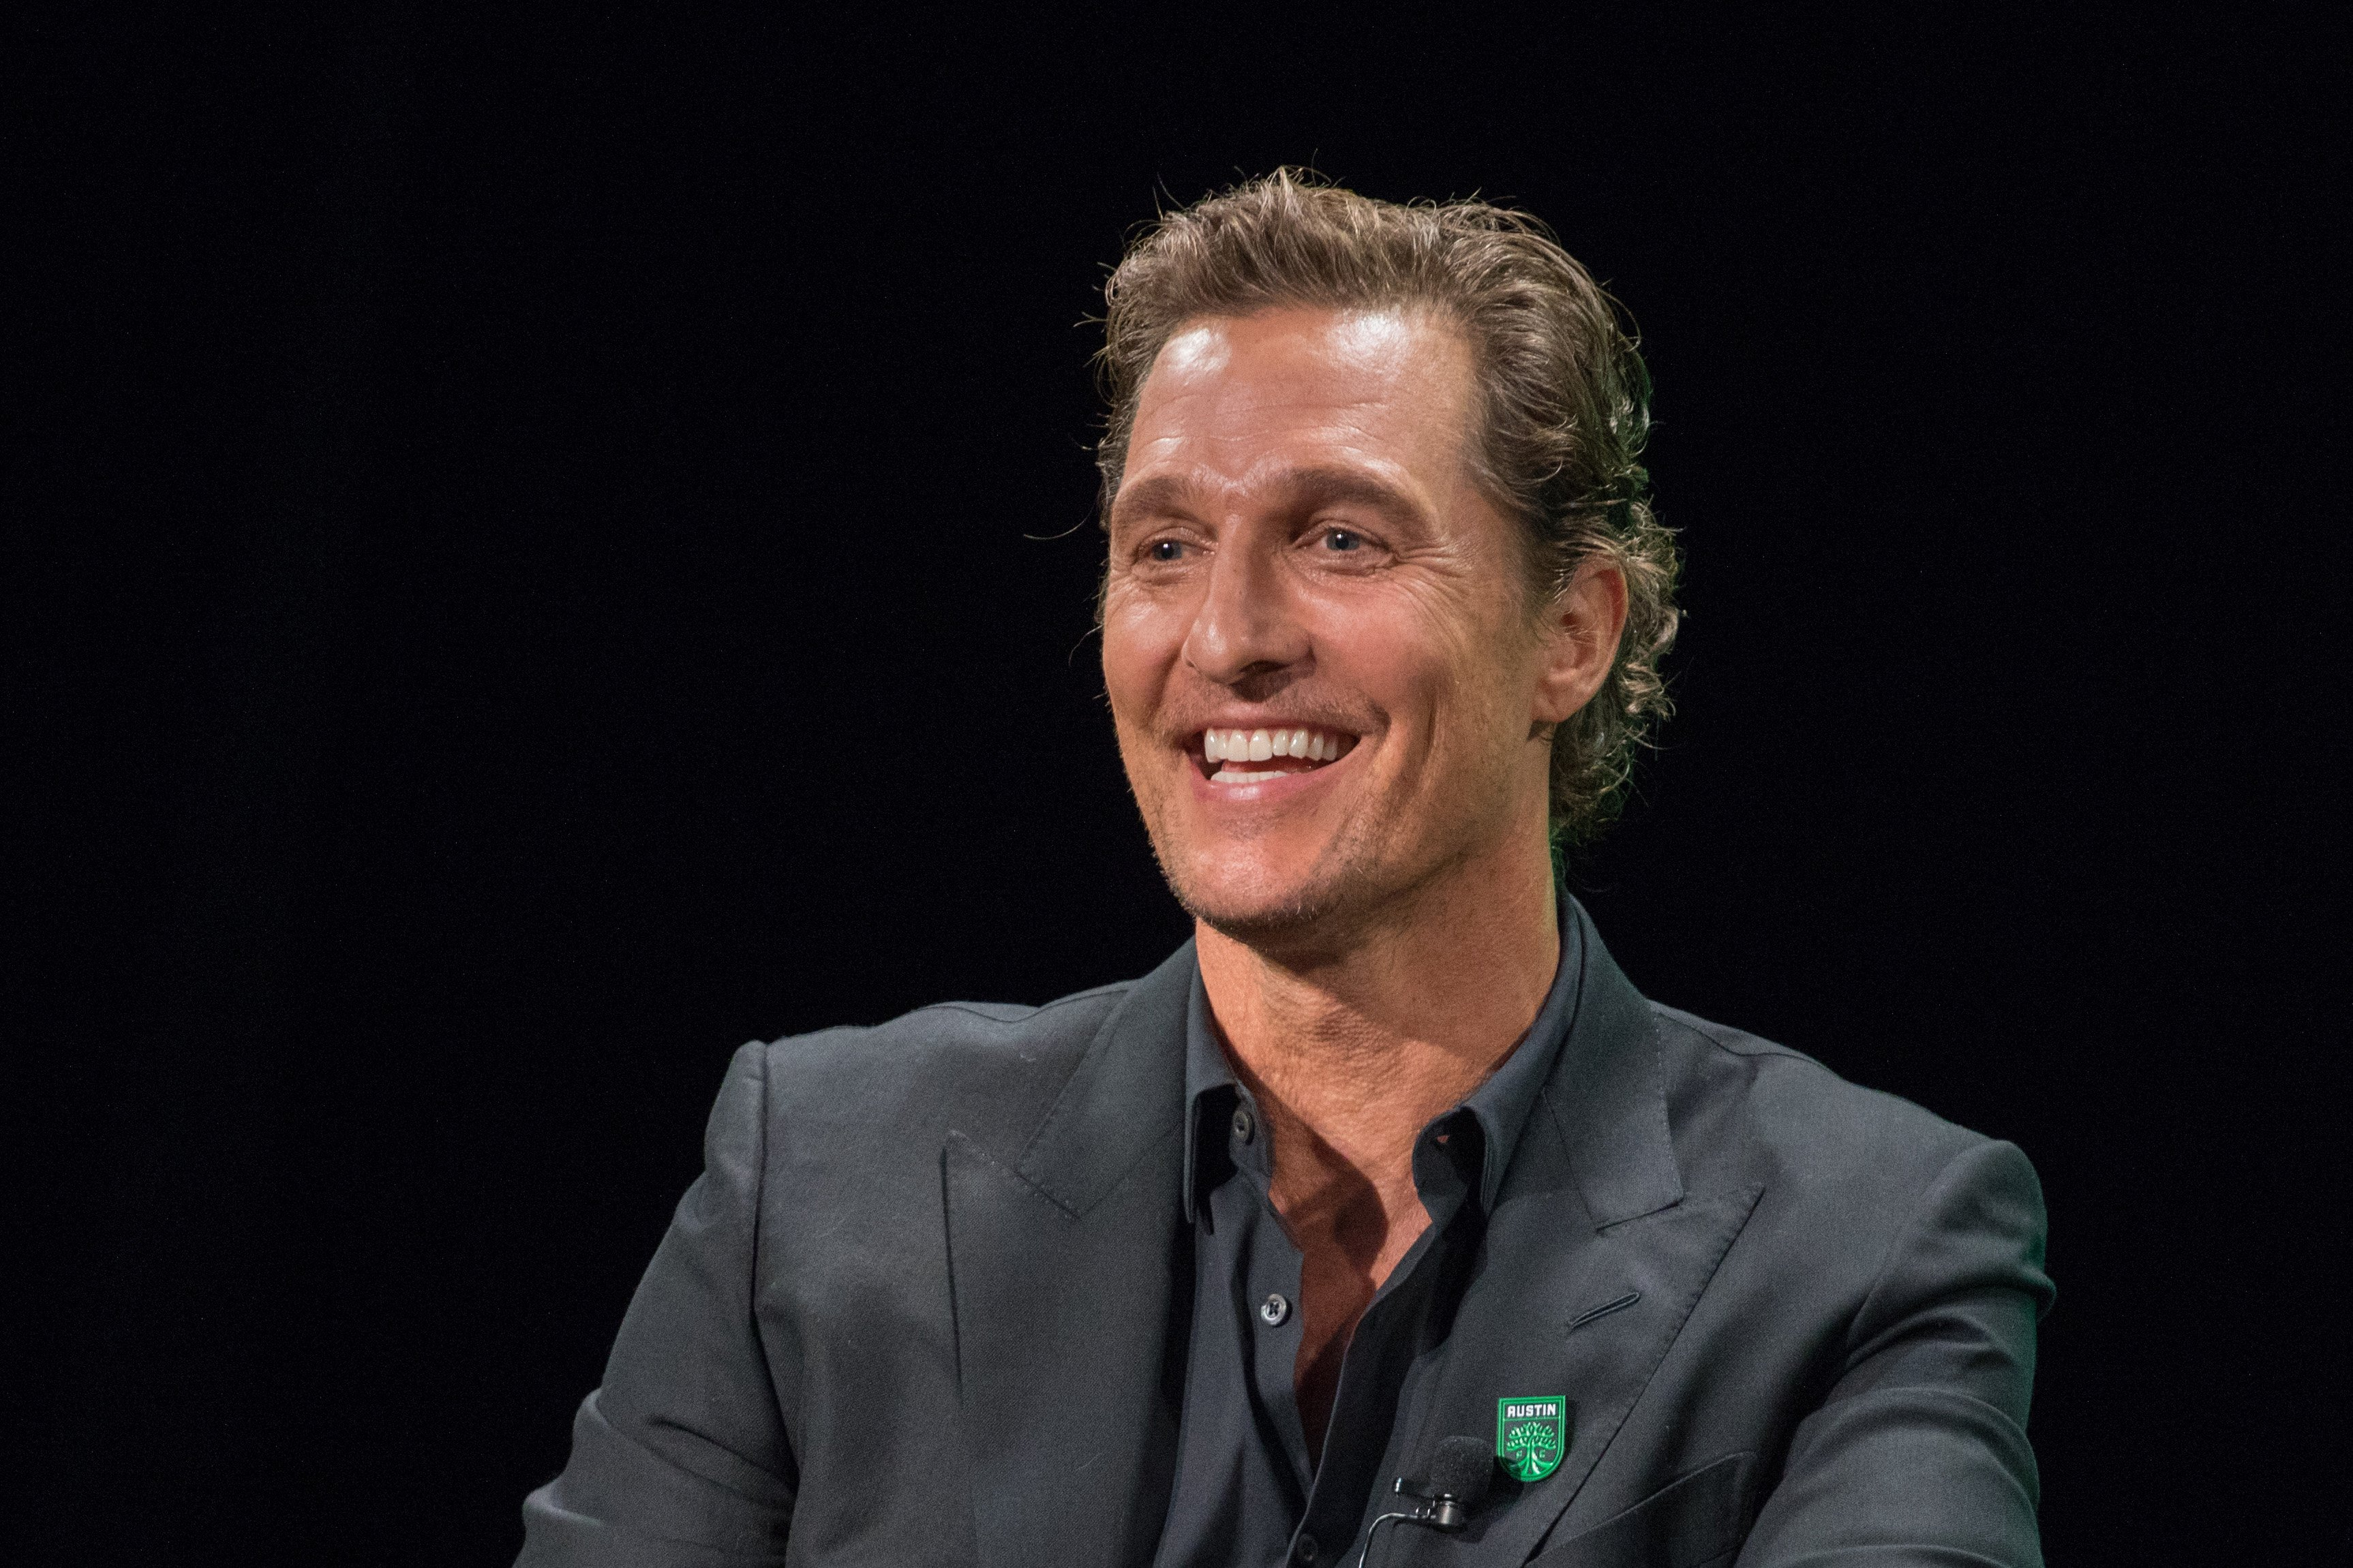 Matthew McConaughey attending the Austin FC Major League Soccer Club on August 23, 2019 in Austin, Texas.  | Source: Getty Images